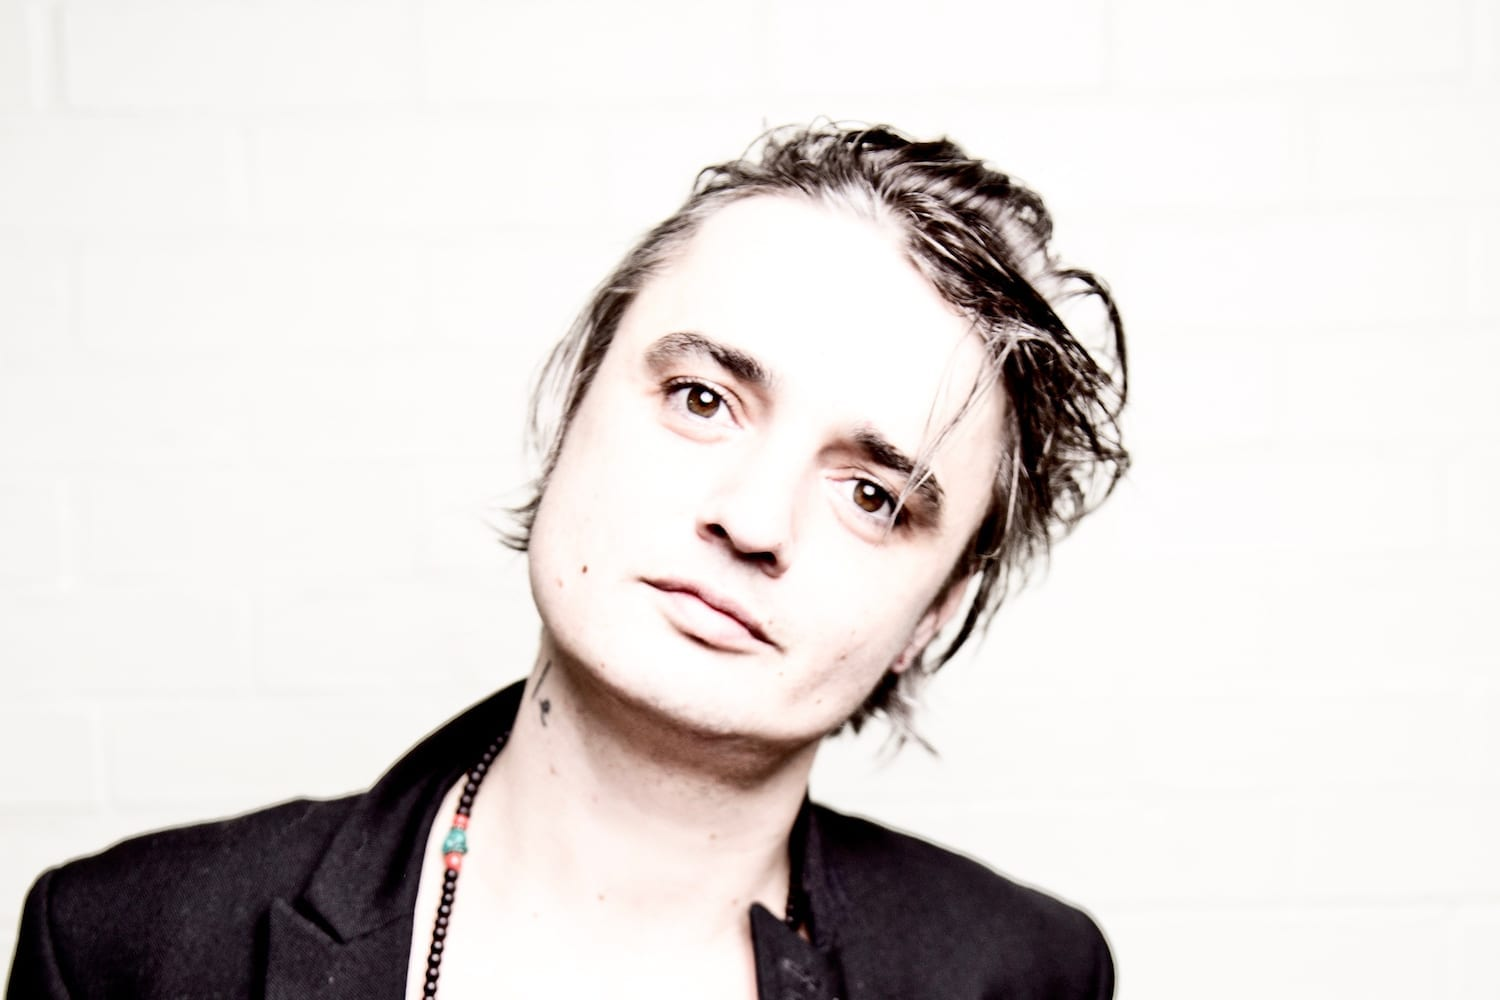 Album Review: Hamburg Demonstrations // Peter Doherty